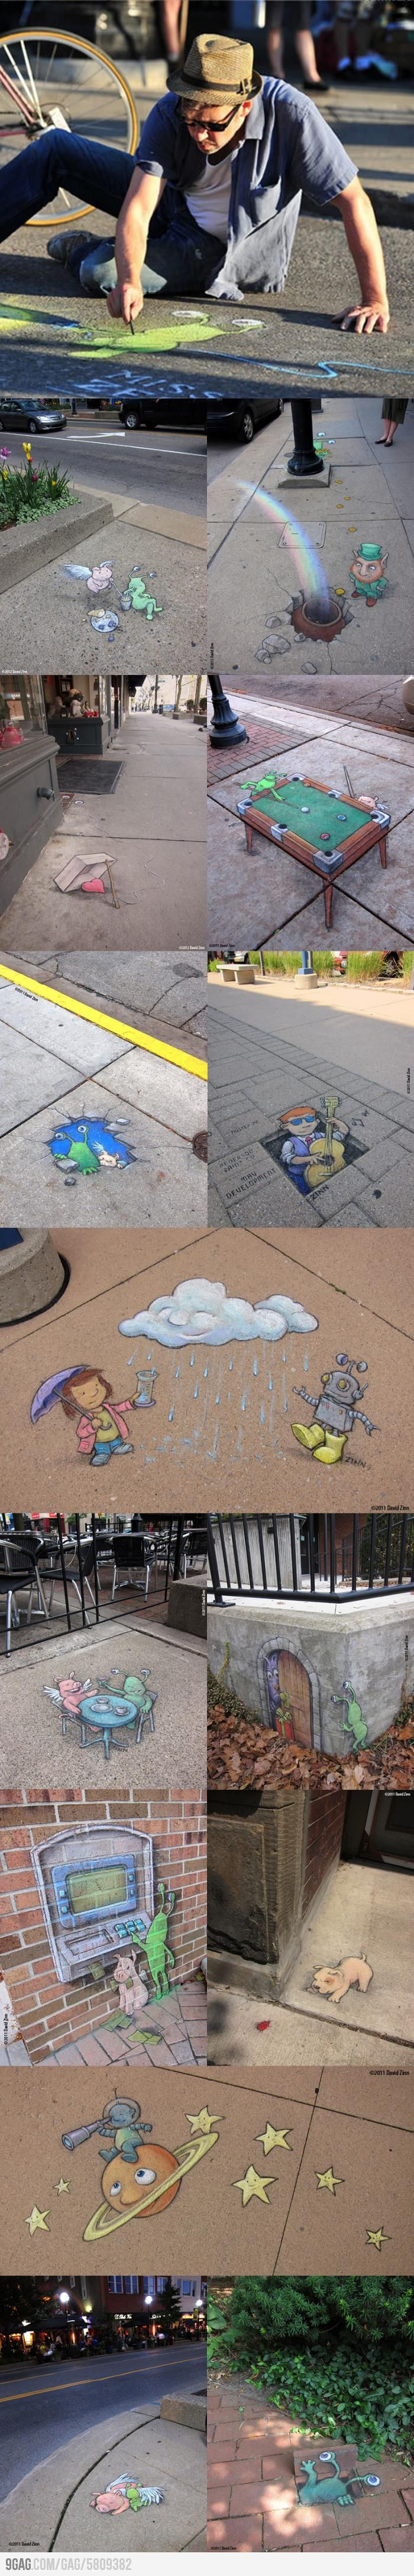 Awesome chalk art